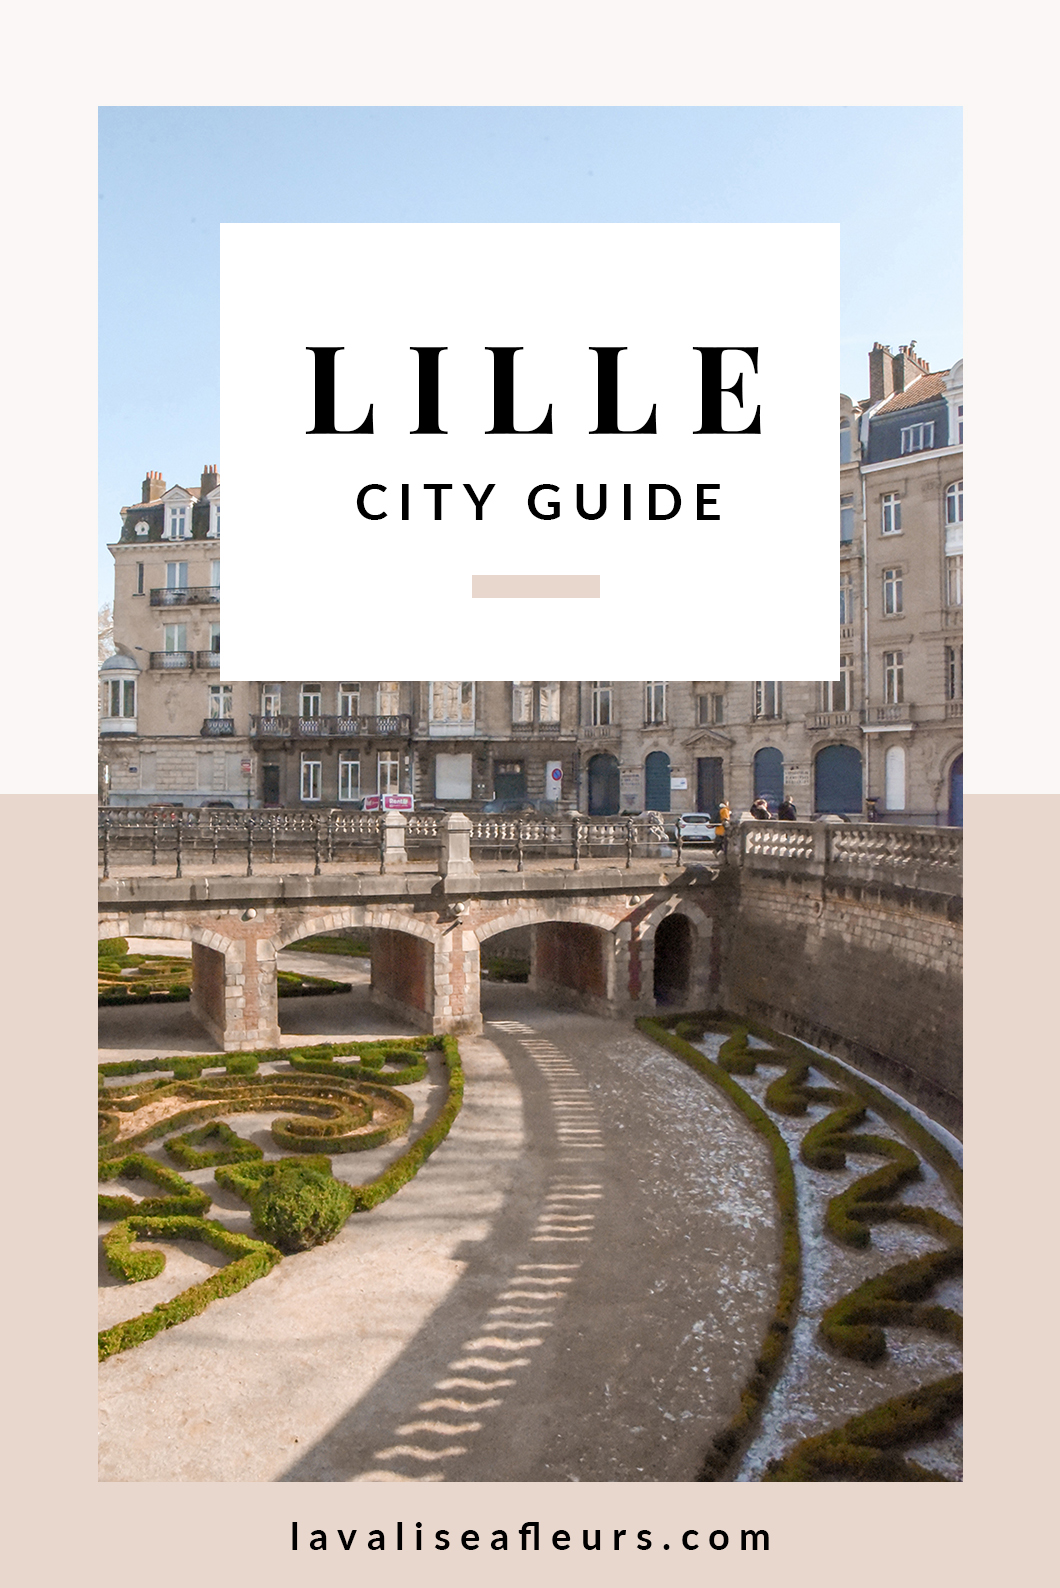 City guide de Lille